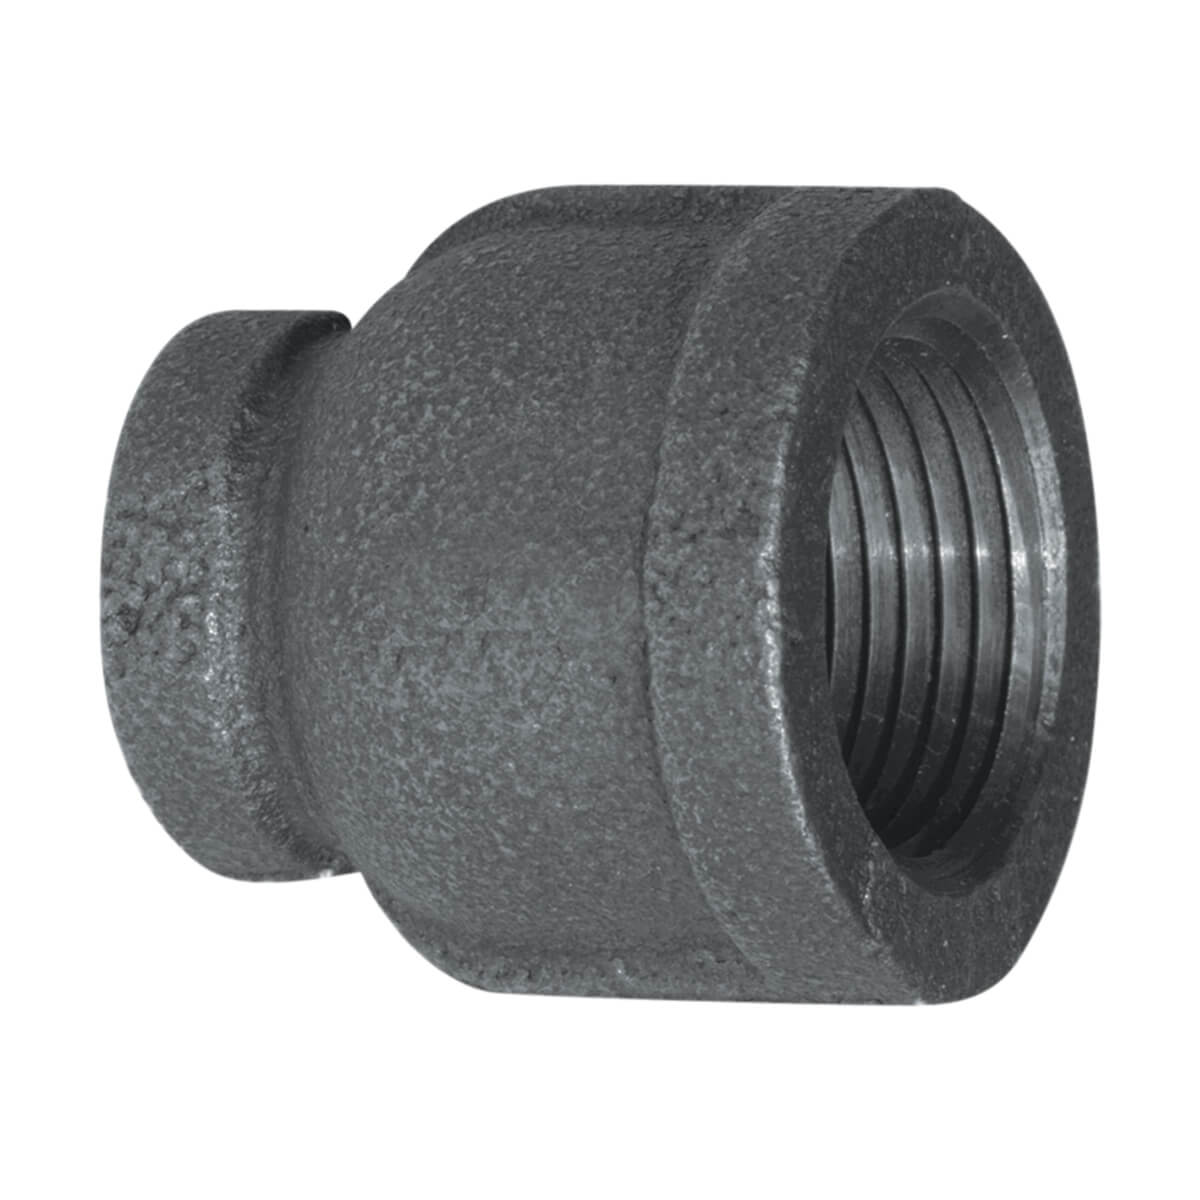 "Fitting Black Iron Reducer Coupling 1"" x 1/2"""